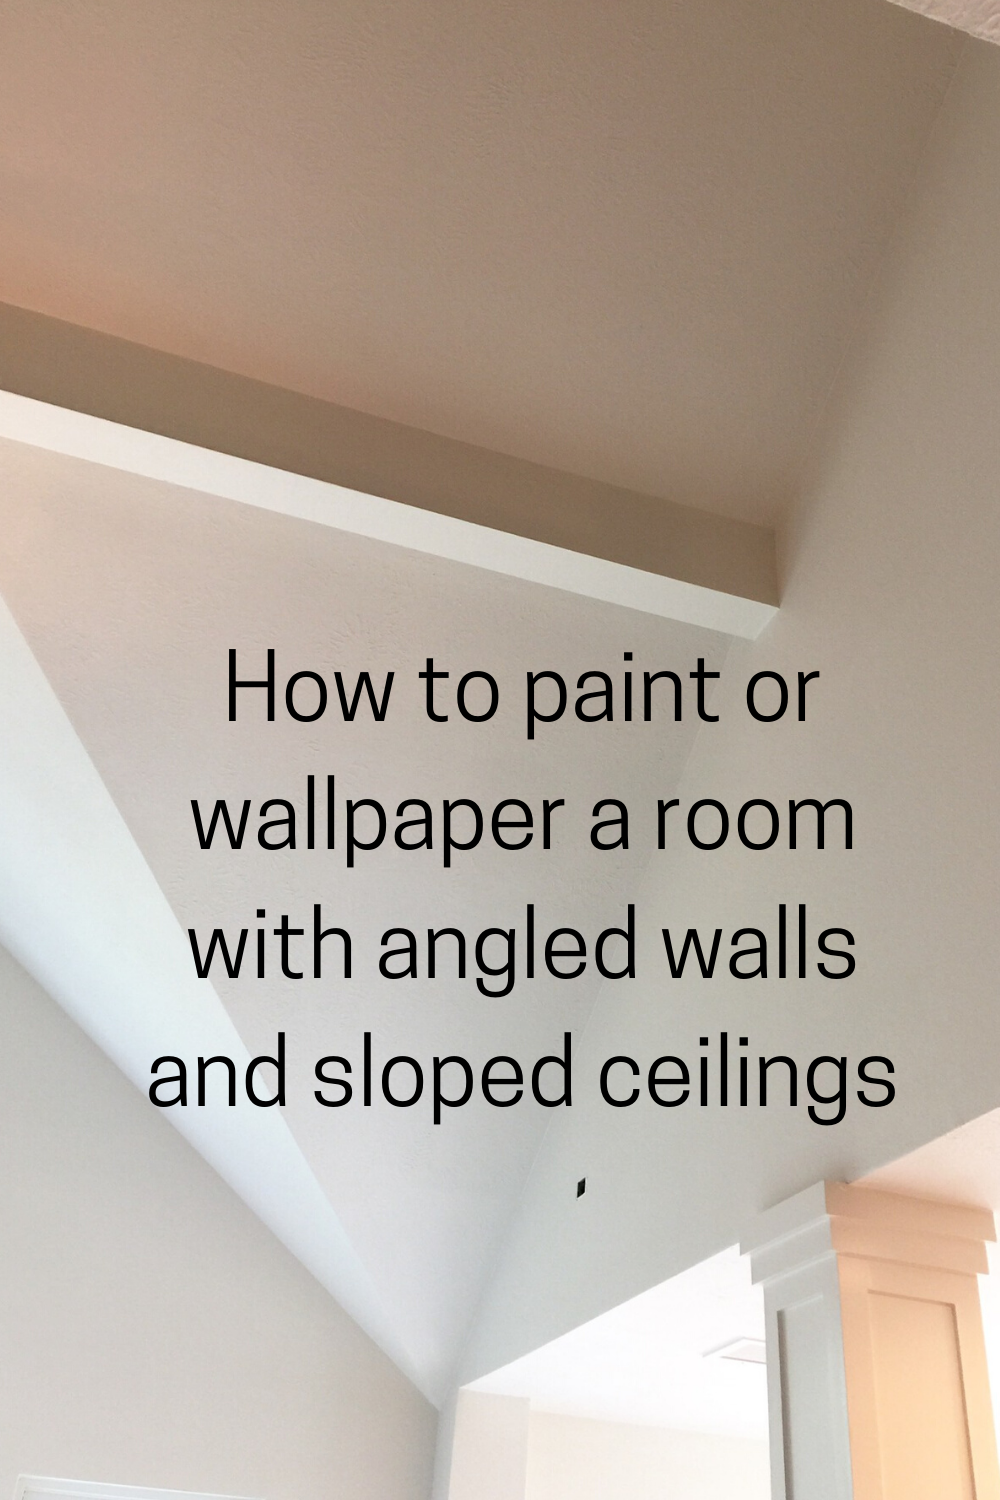 Painting Tip Wallpapering And Painting Angled Walls And Sloped Ceilings Linda Holt Creative Sloped Ceiling Sloped Ceiling Bedroom Attic Bedroom Ideas Angled Ceilings